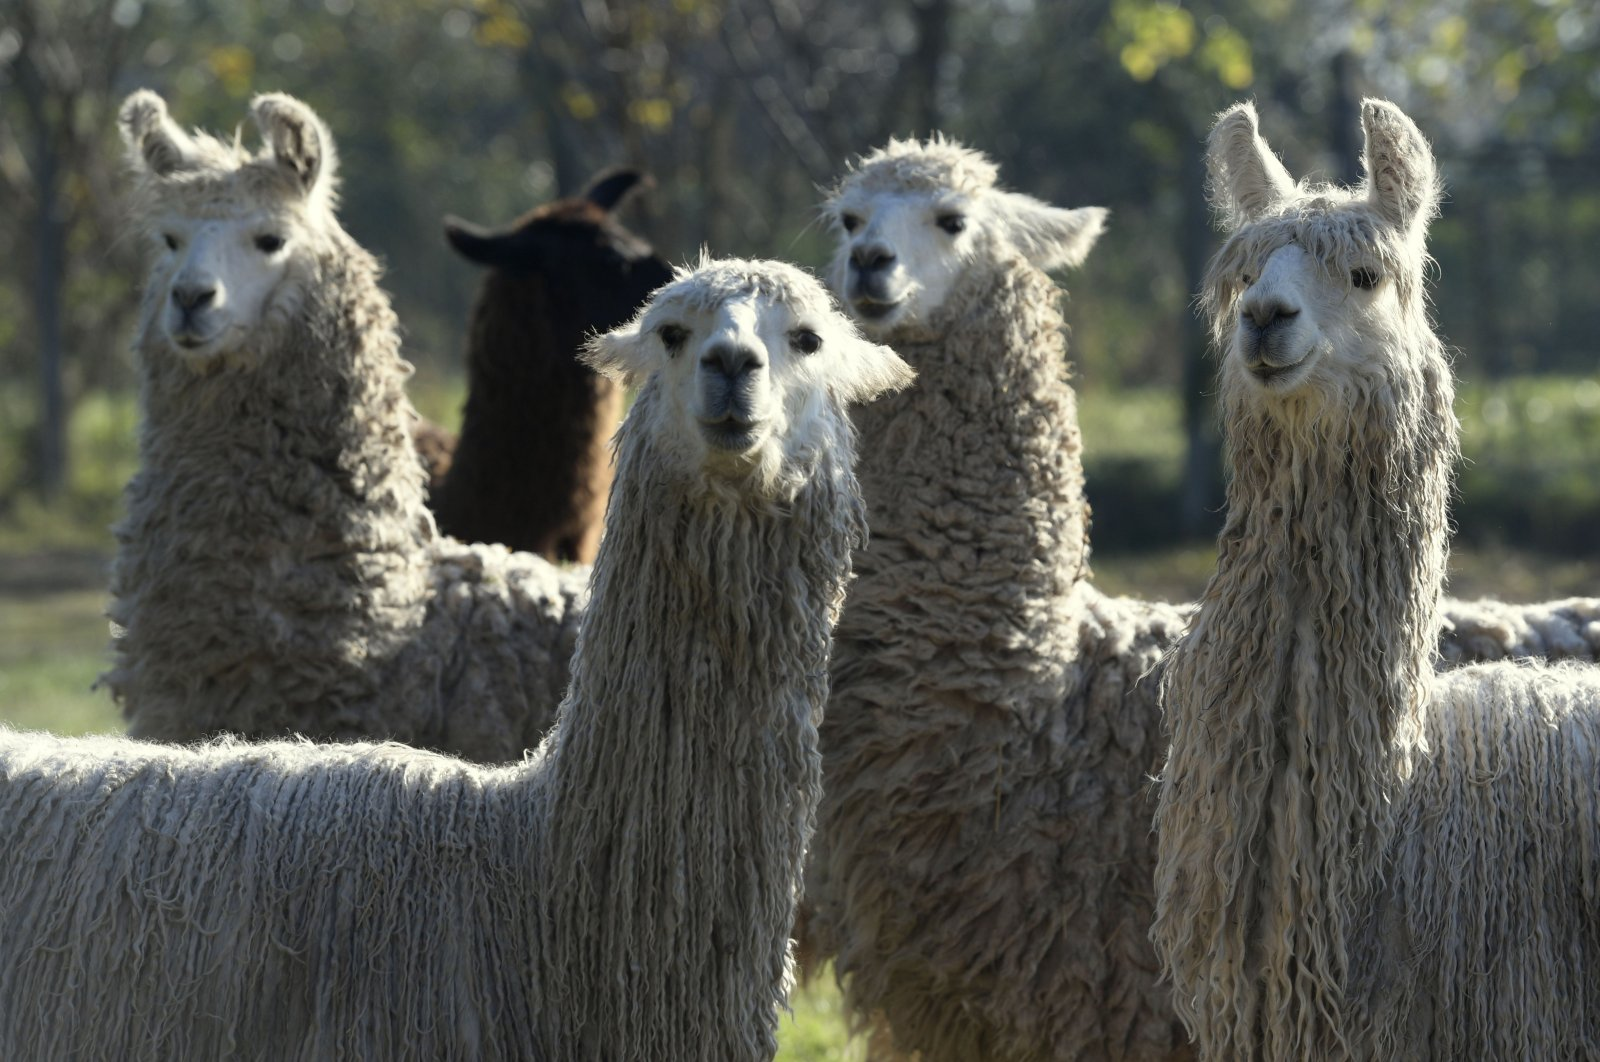 A photo of llamas immunized with the SARS-CoV-2 protein at the experimental field of the National Agricultural Technology Institute (INTA) in Hurlingham, Buenos Aires, Argentina, June 2, 2020. (AFP Photo)